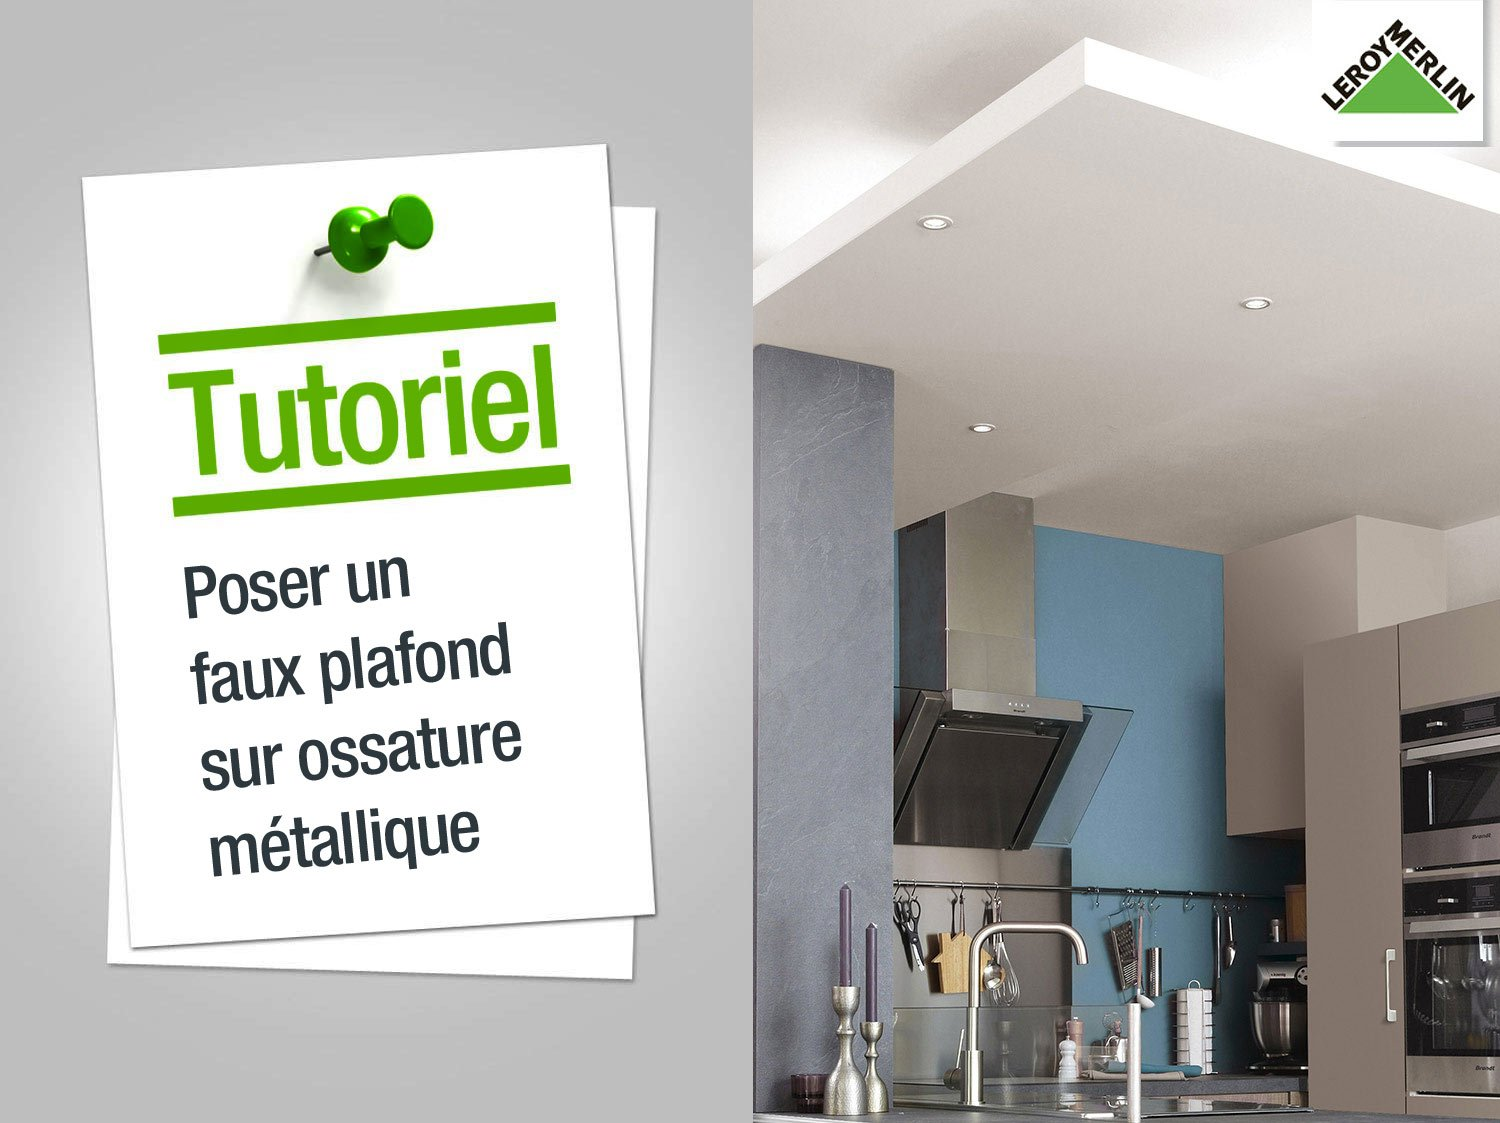 Comment poser un faux plafond pvc isolation id es for Comment faire un faux plafond en pvc